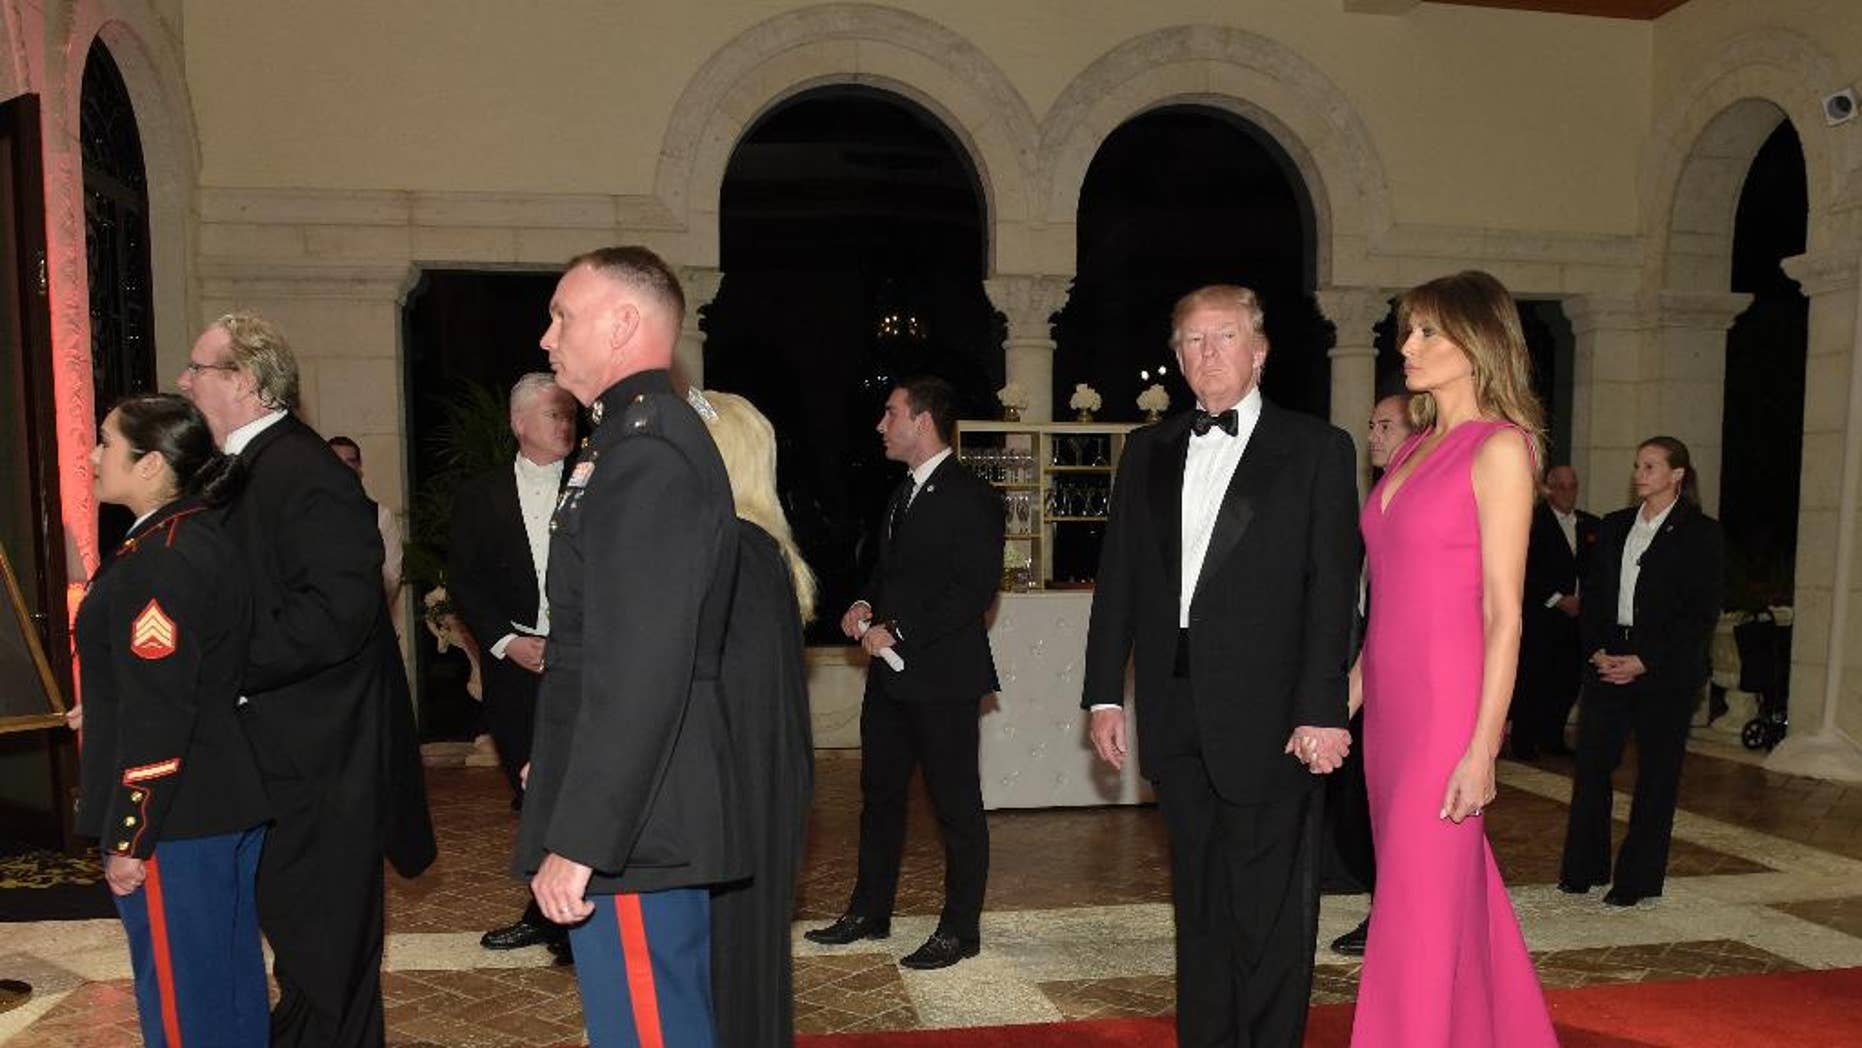 President Donald Trump and first lady Melania Trump arrive for the 60th annual Red Cross Gala at Trump's Mar-a-Lago resort in Palm Beach, Fla., Saturday, Feb. 4, 2017. (AP Photo/Susan Walsh)